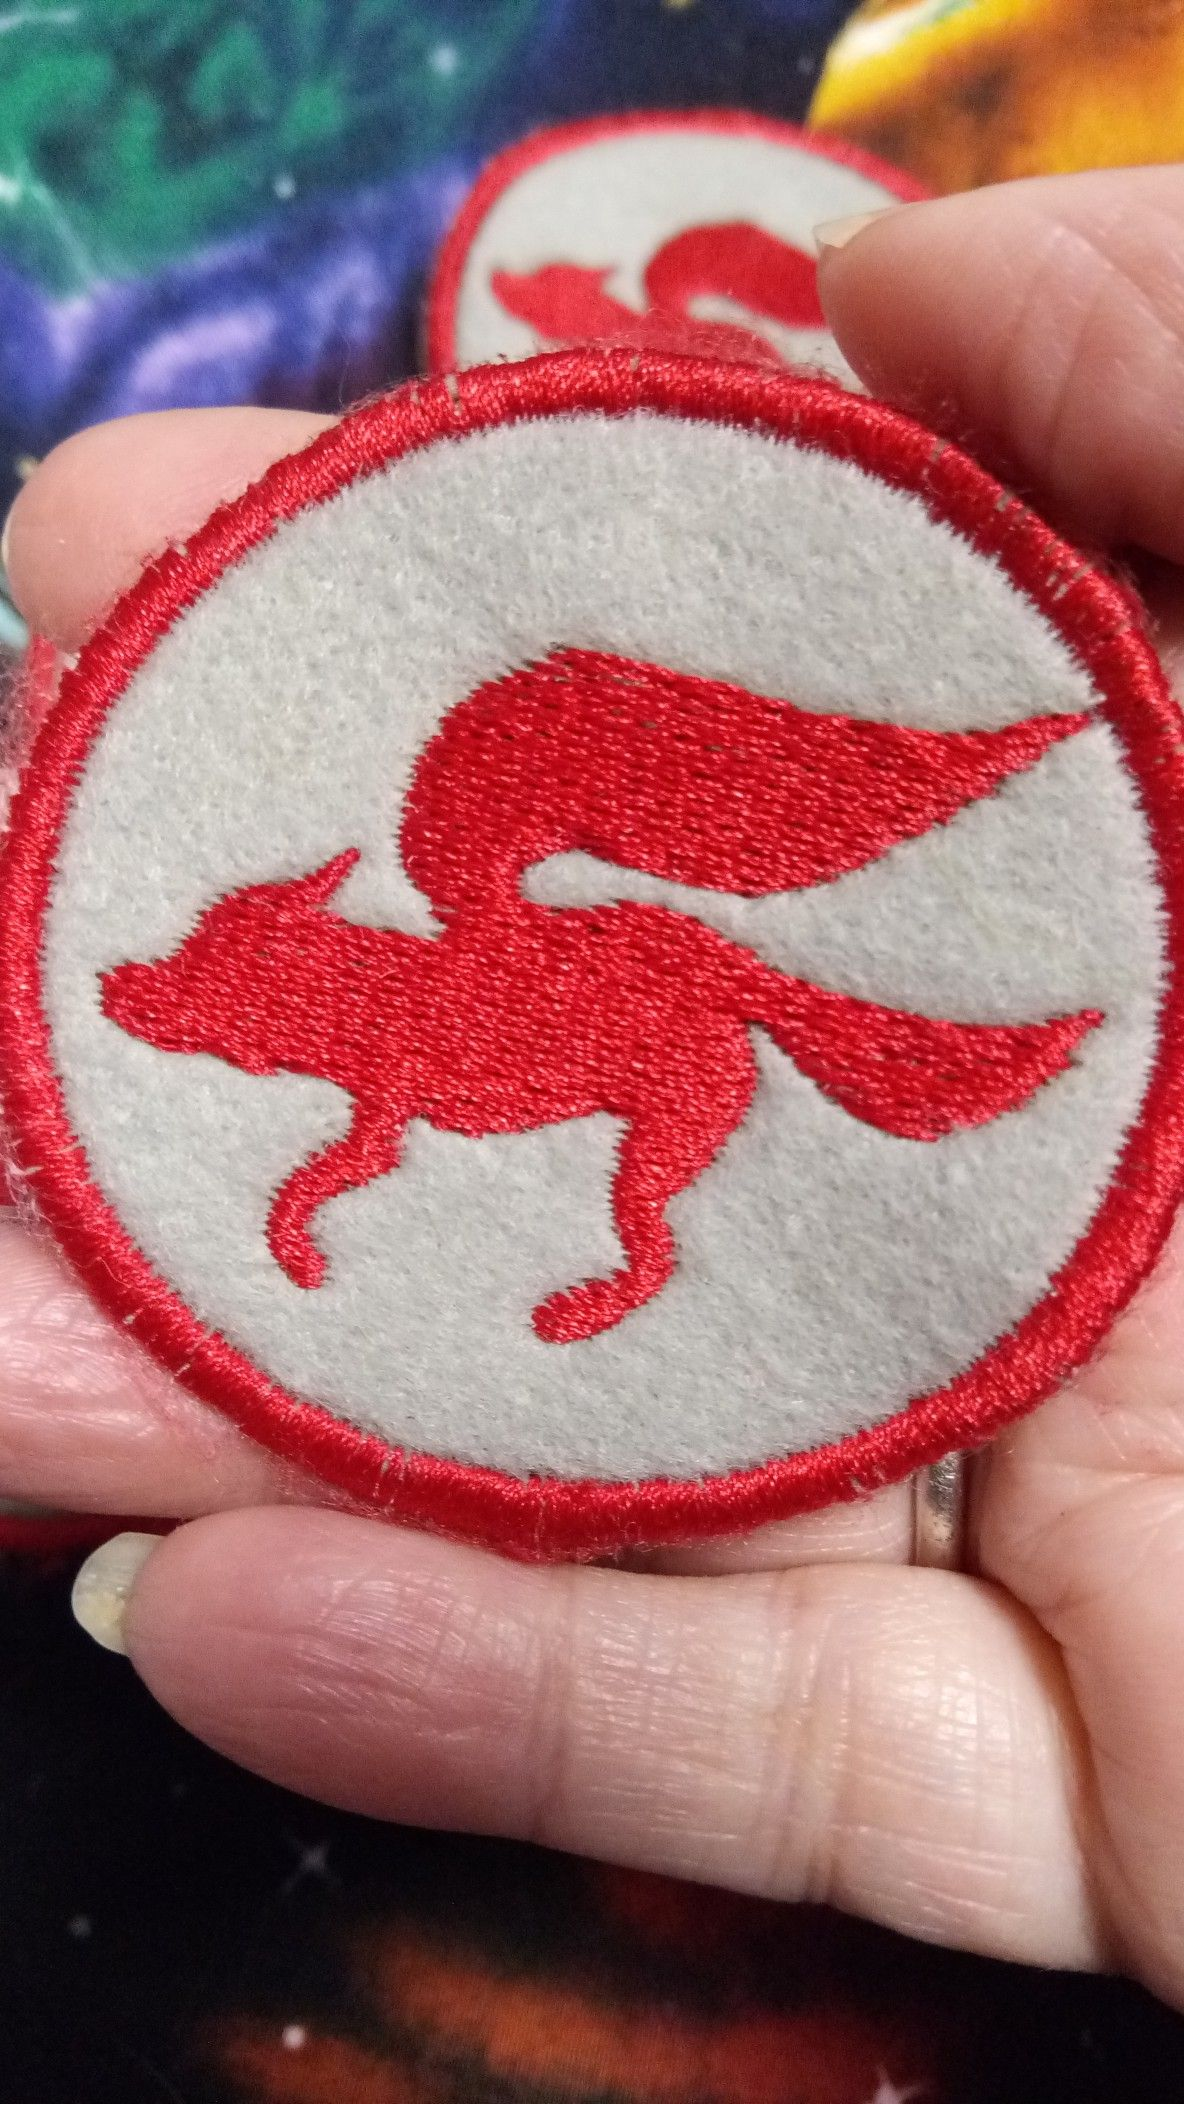 Available in sew on iron on velcro custom patches